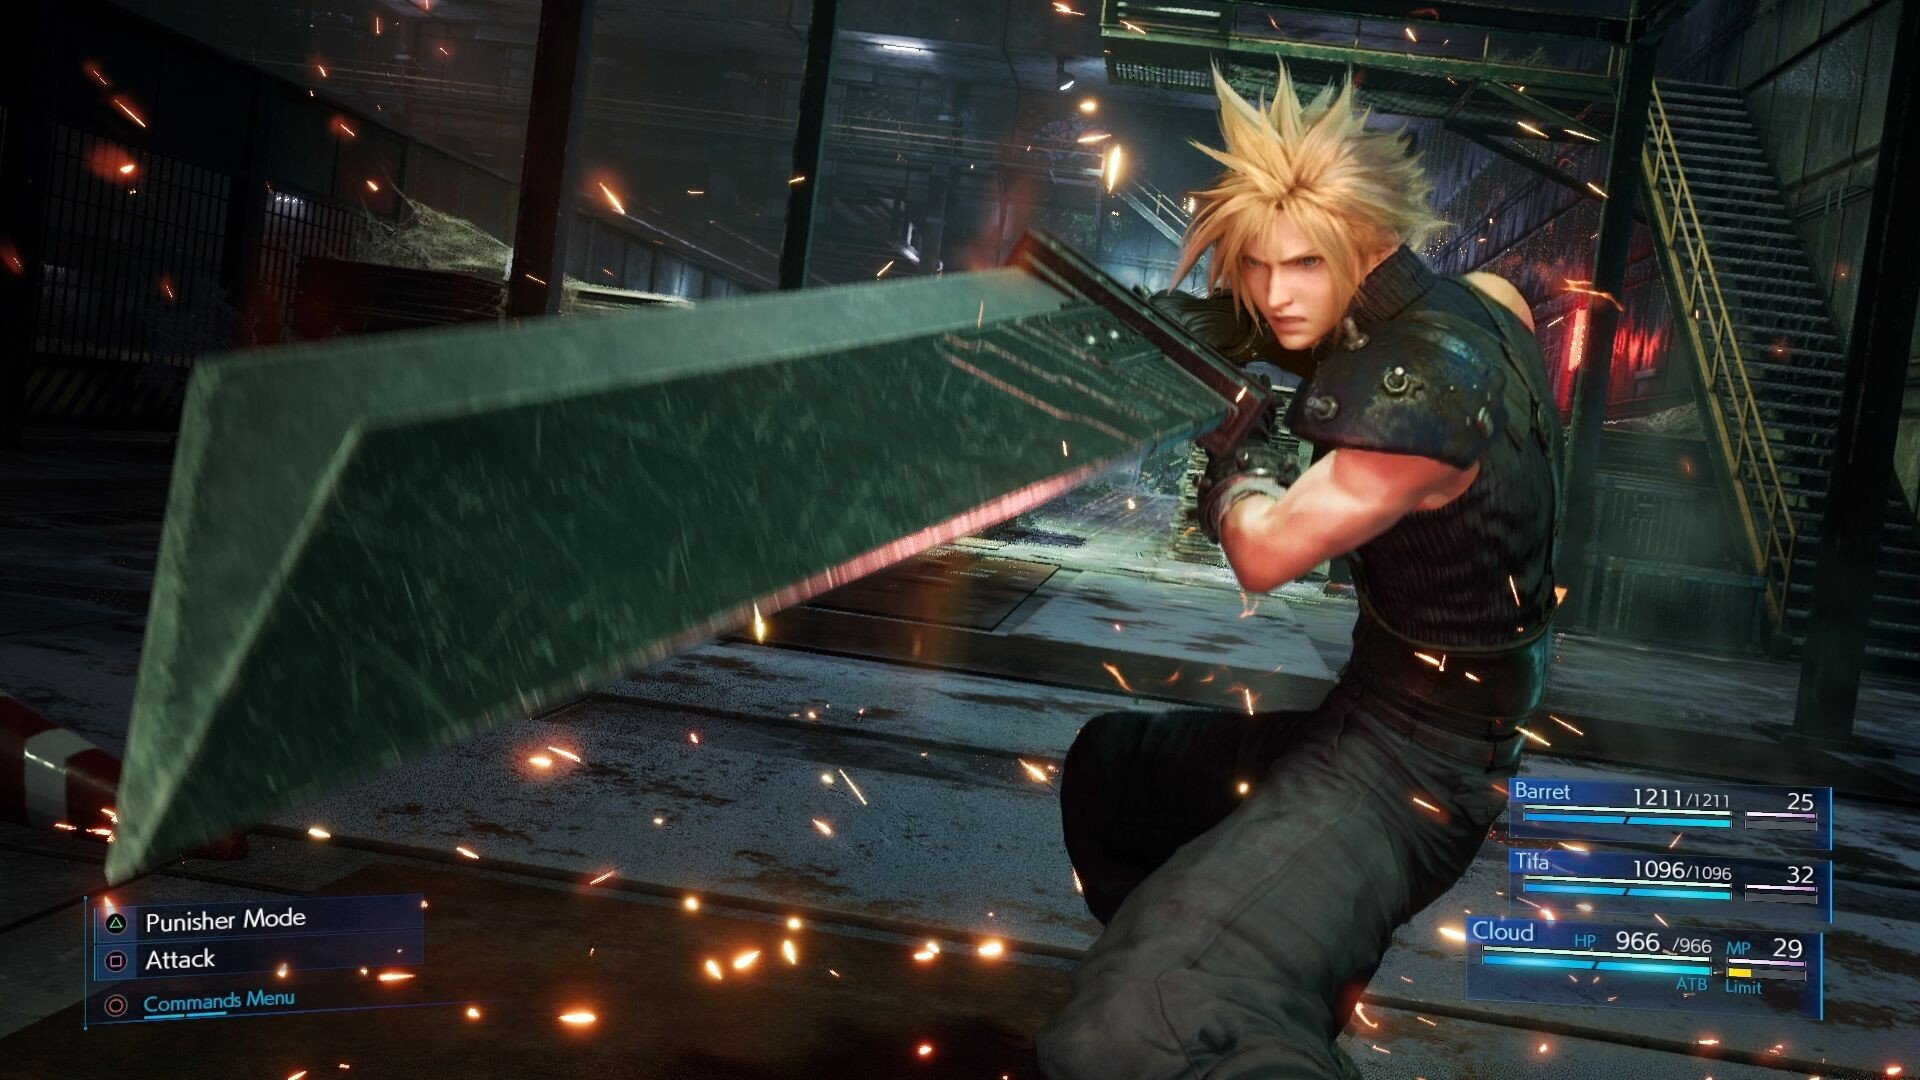 'Final Fantasy 7 Remake' Will Ship Early To Make Its Release Date